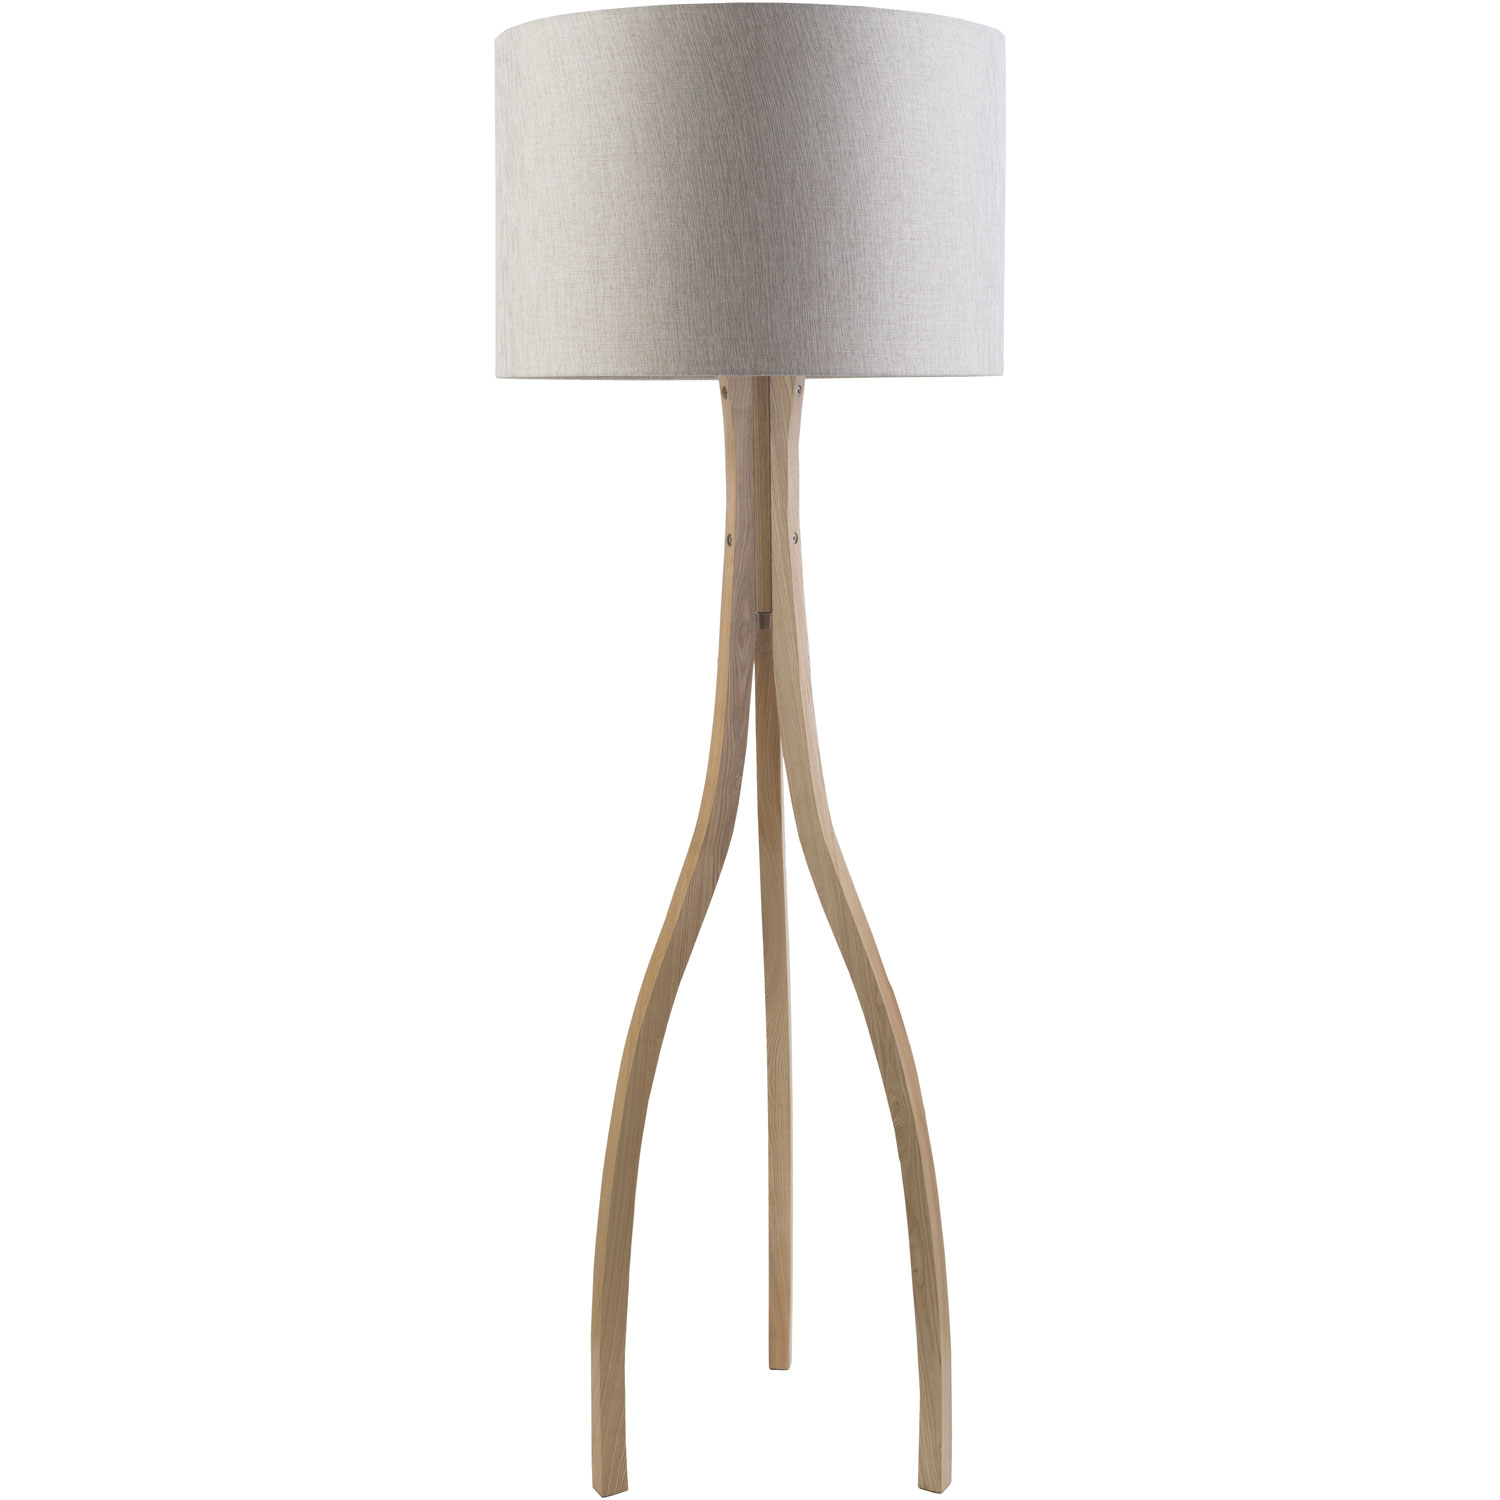 Natural Light Floor Lamps: natural light floor lamp photo - 2,Lighting